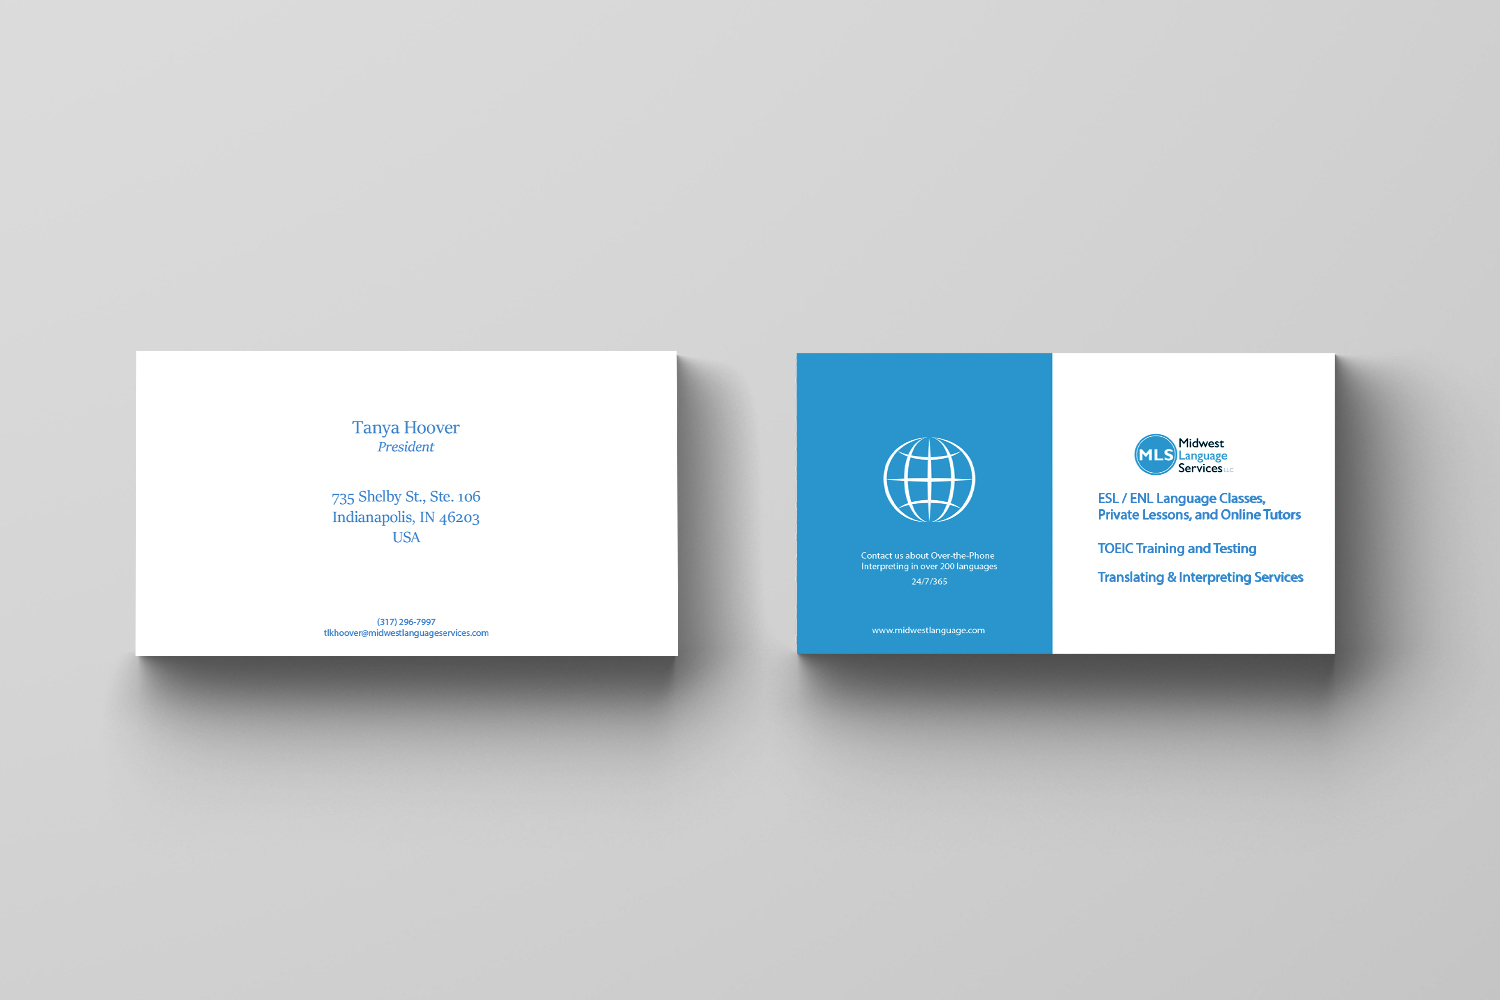 Serious modern business business card design for midwest language business card design by maria azaryan for midwest language services llc design 17767325 reheart Choice Image